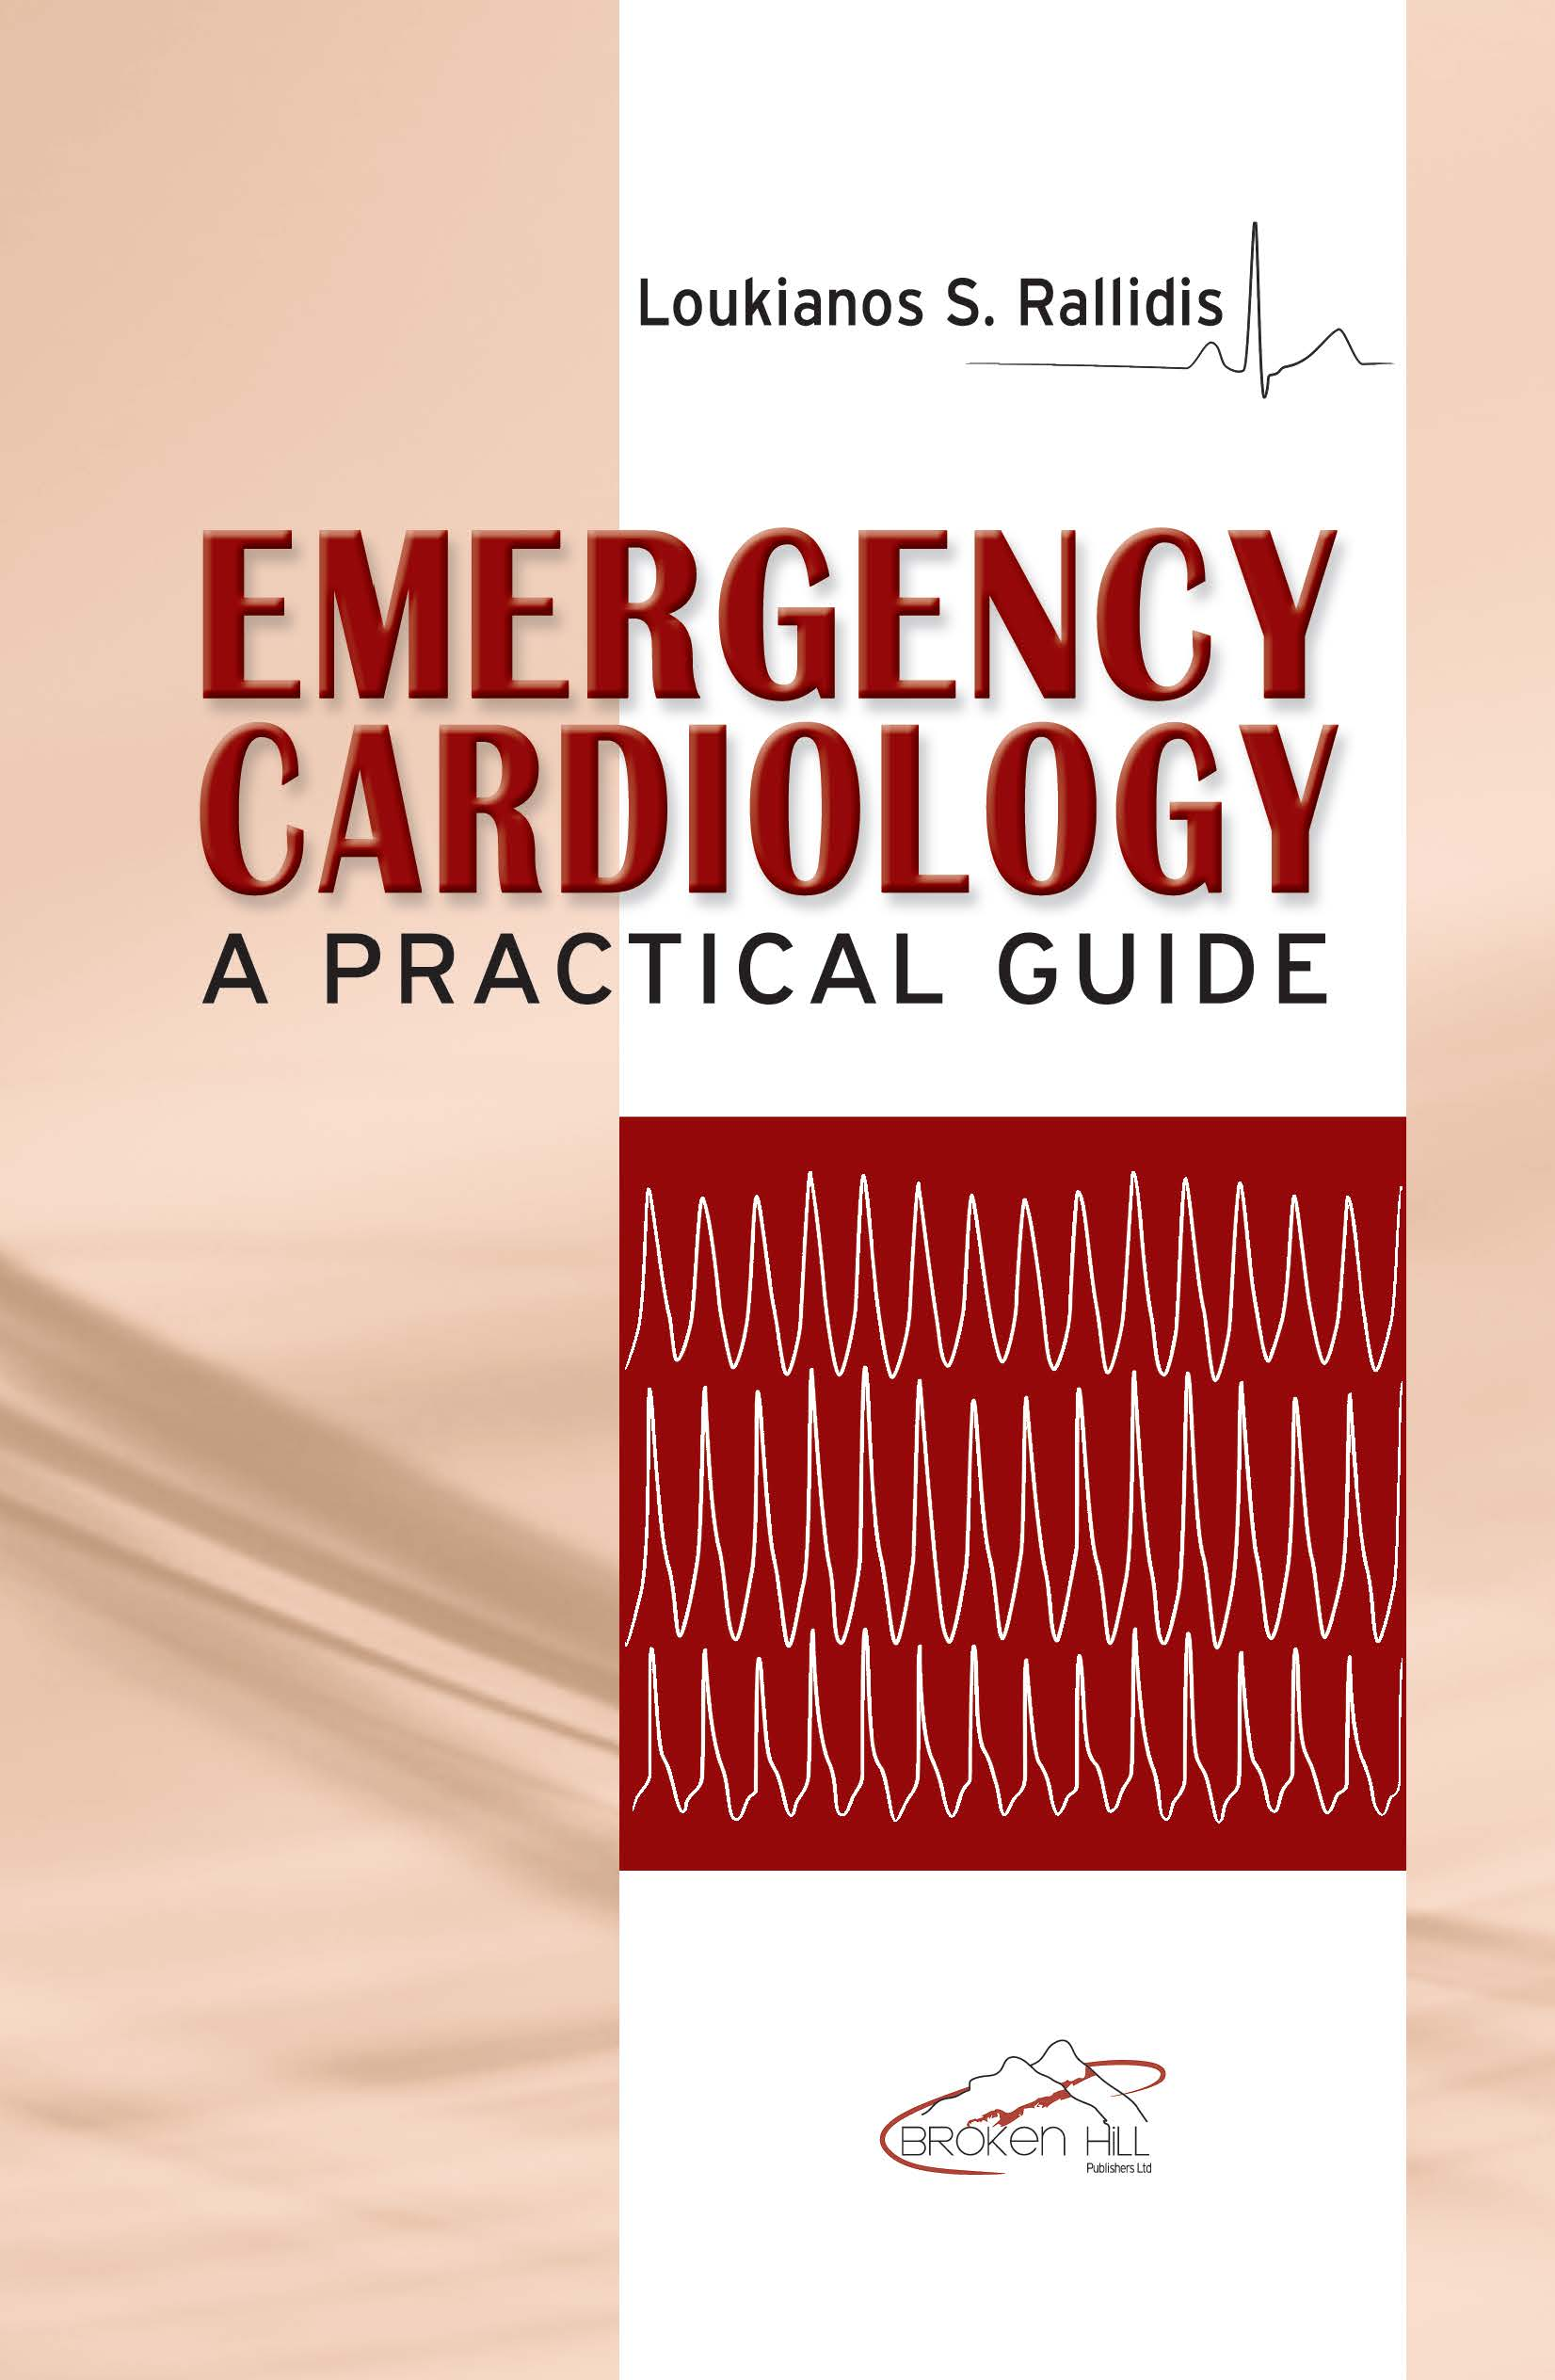 Emergency Cardiology: A Practical Guide